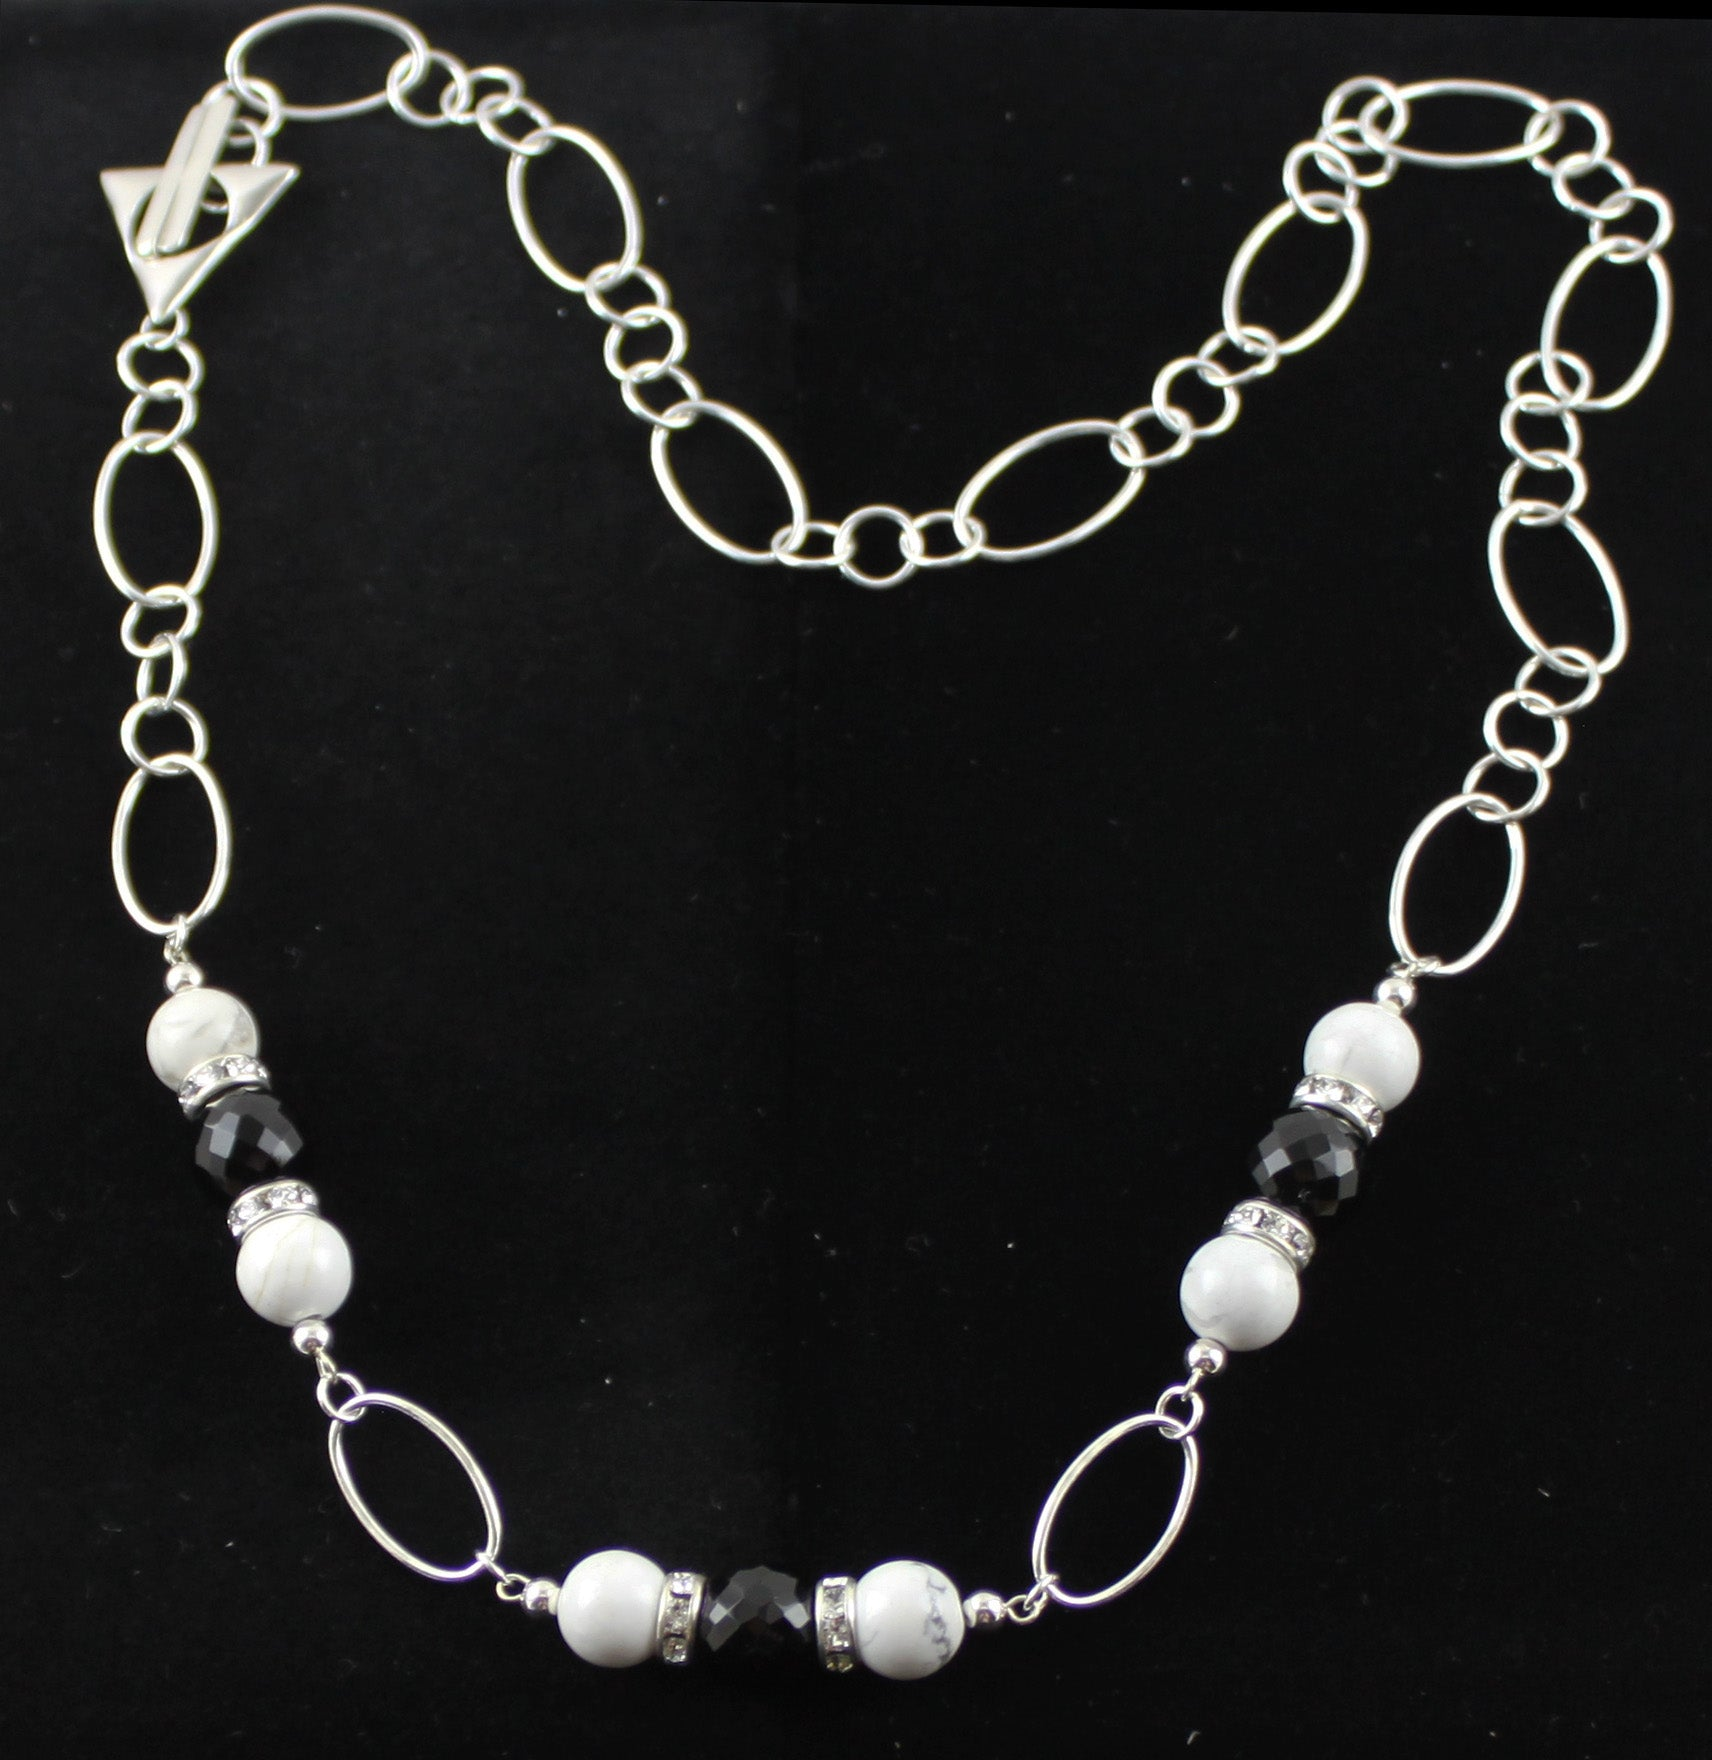 Black & White Howlite Necklace